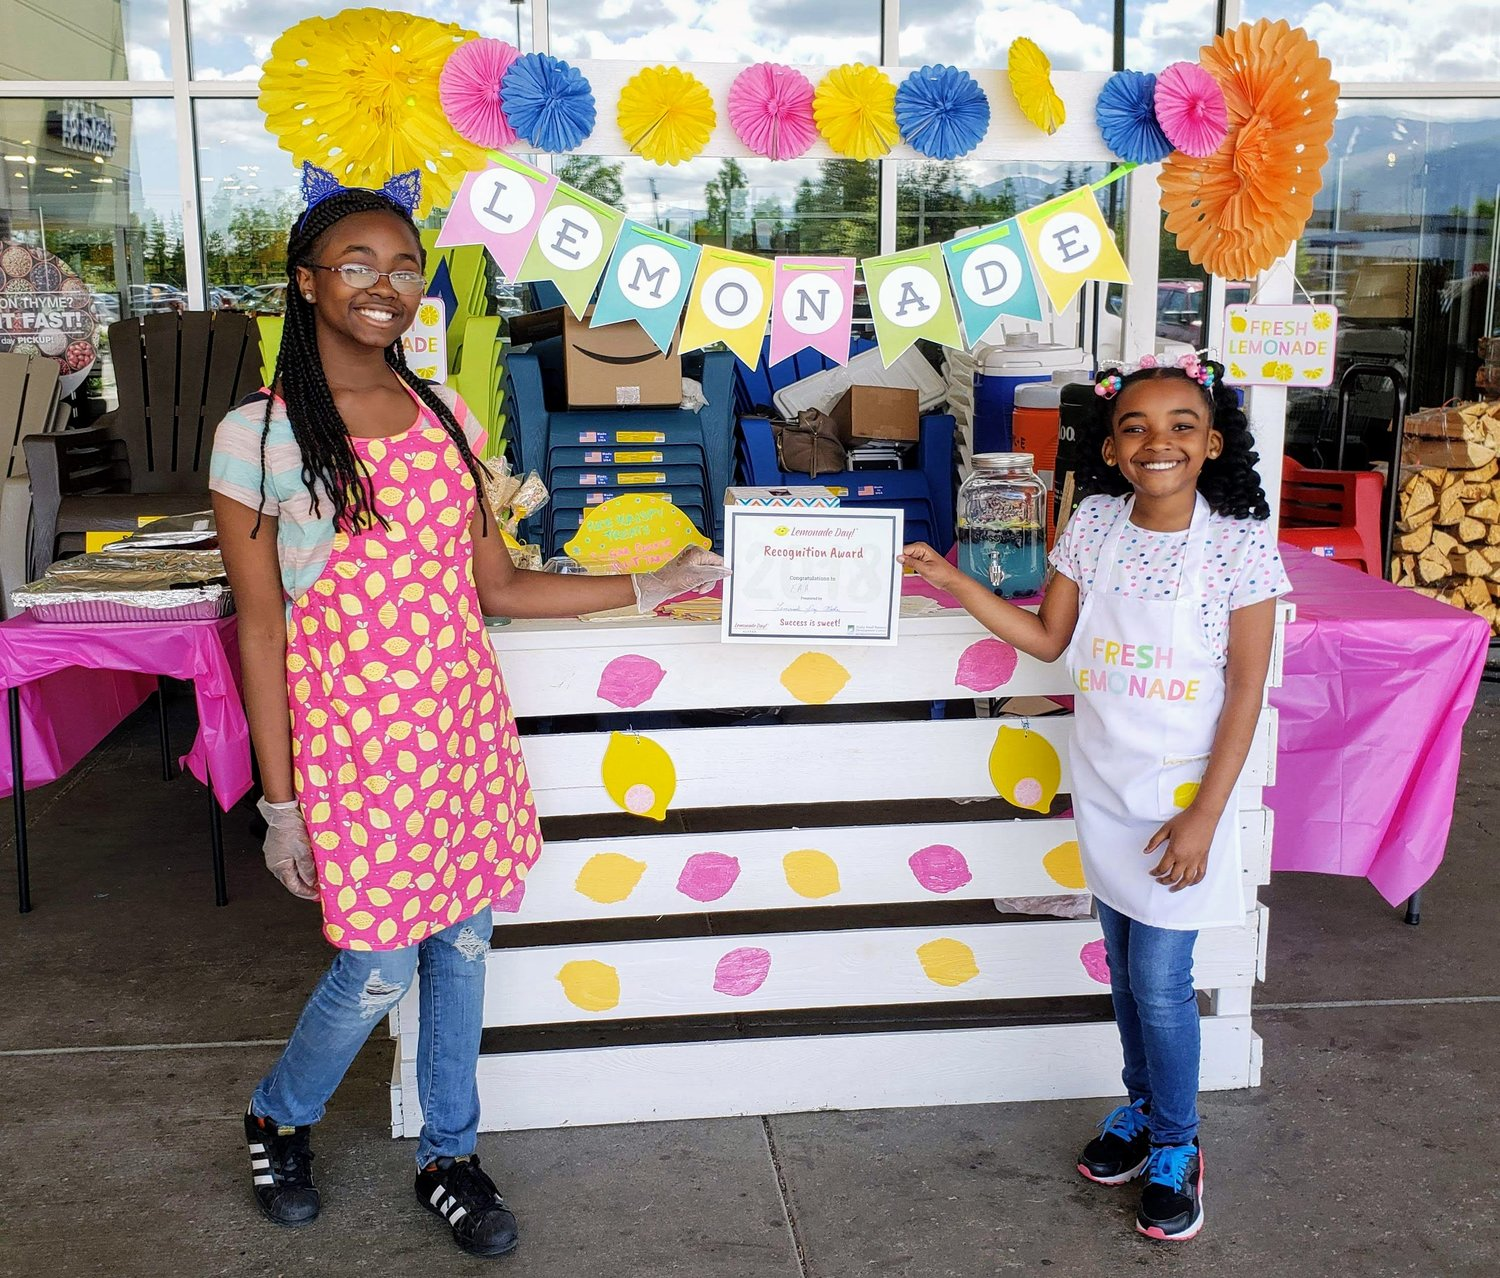 Aaliyah and Amiyah of Double A's Lemonade Stand won last year's Entrepreneurs of the Year award for their creating branding, investor partnerships and new recipes at their stand. (Photo courtesy of Lemonade Day Alaska)